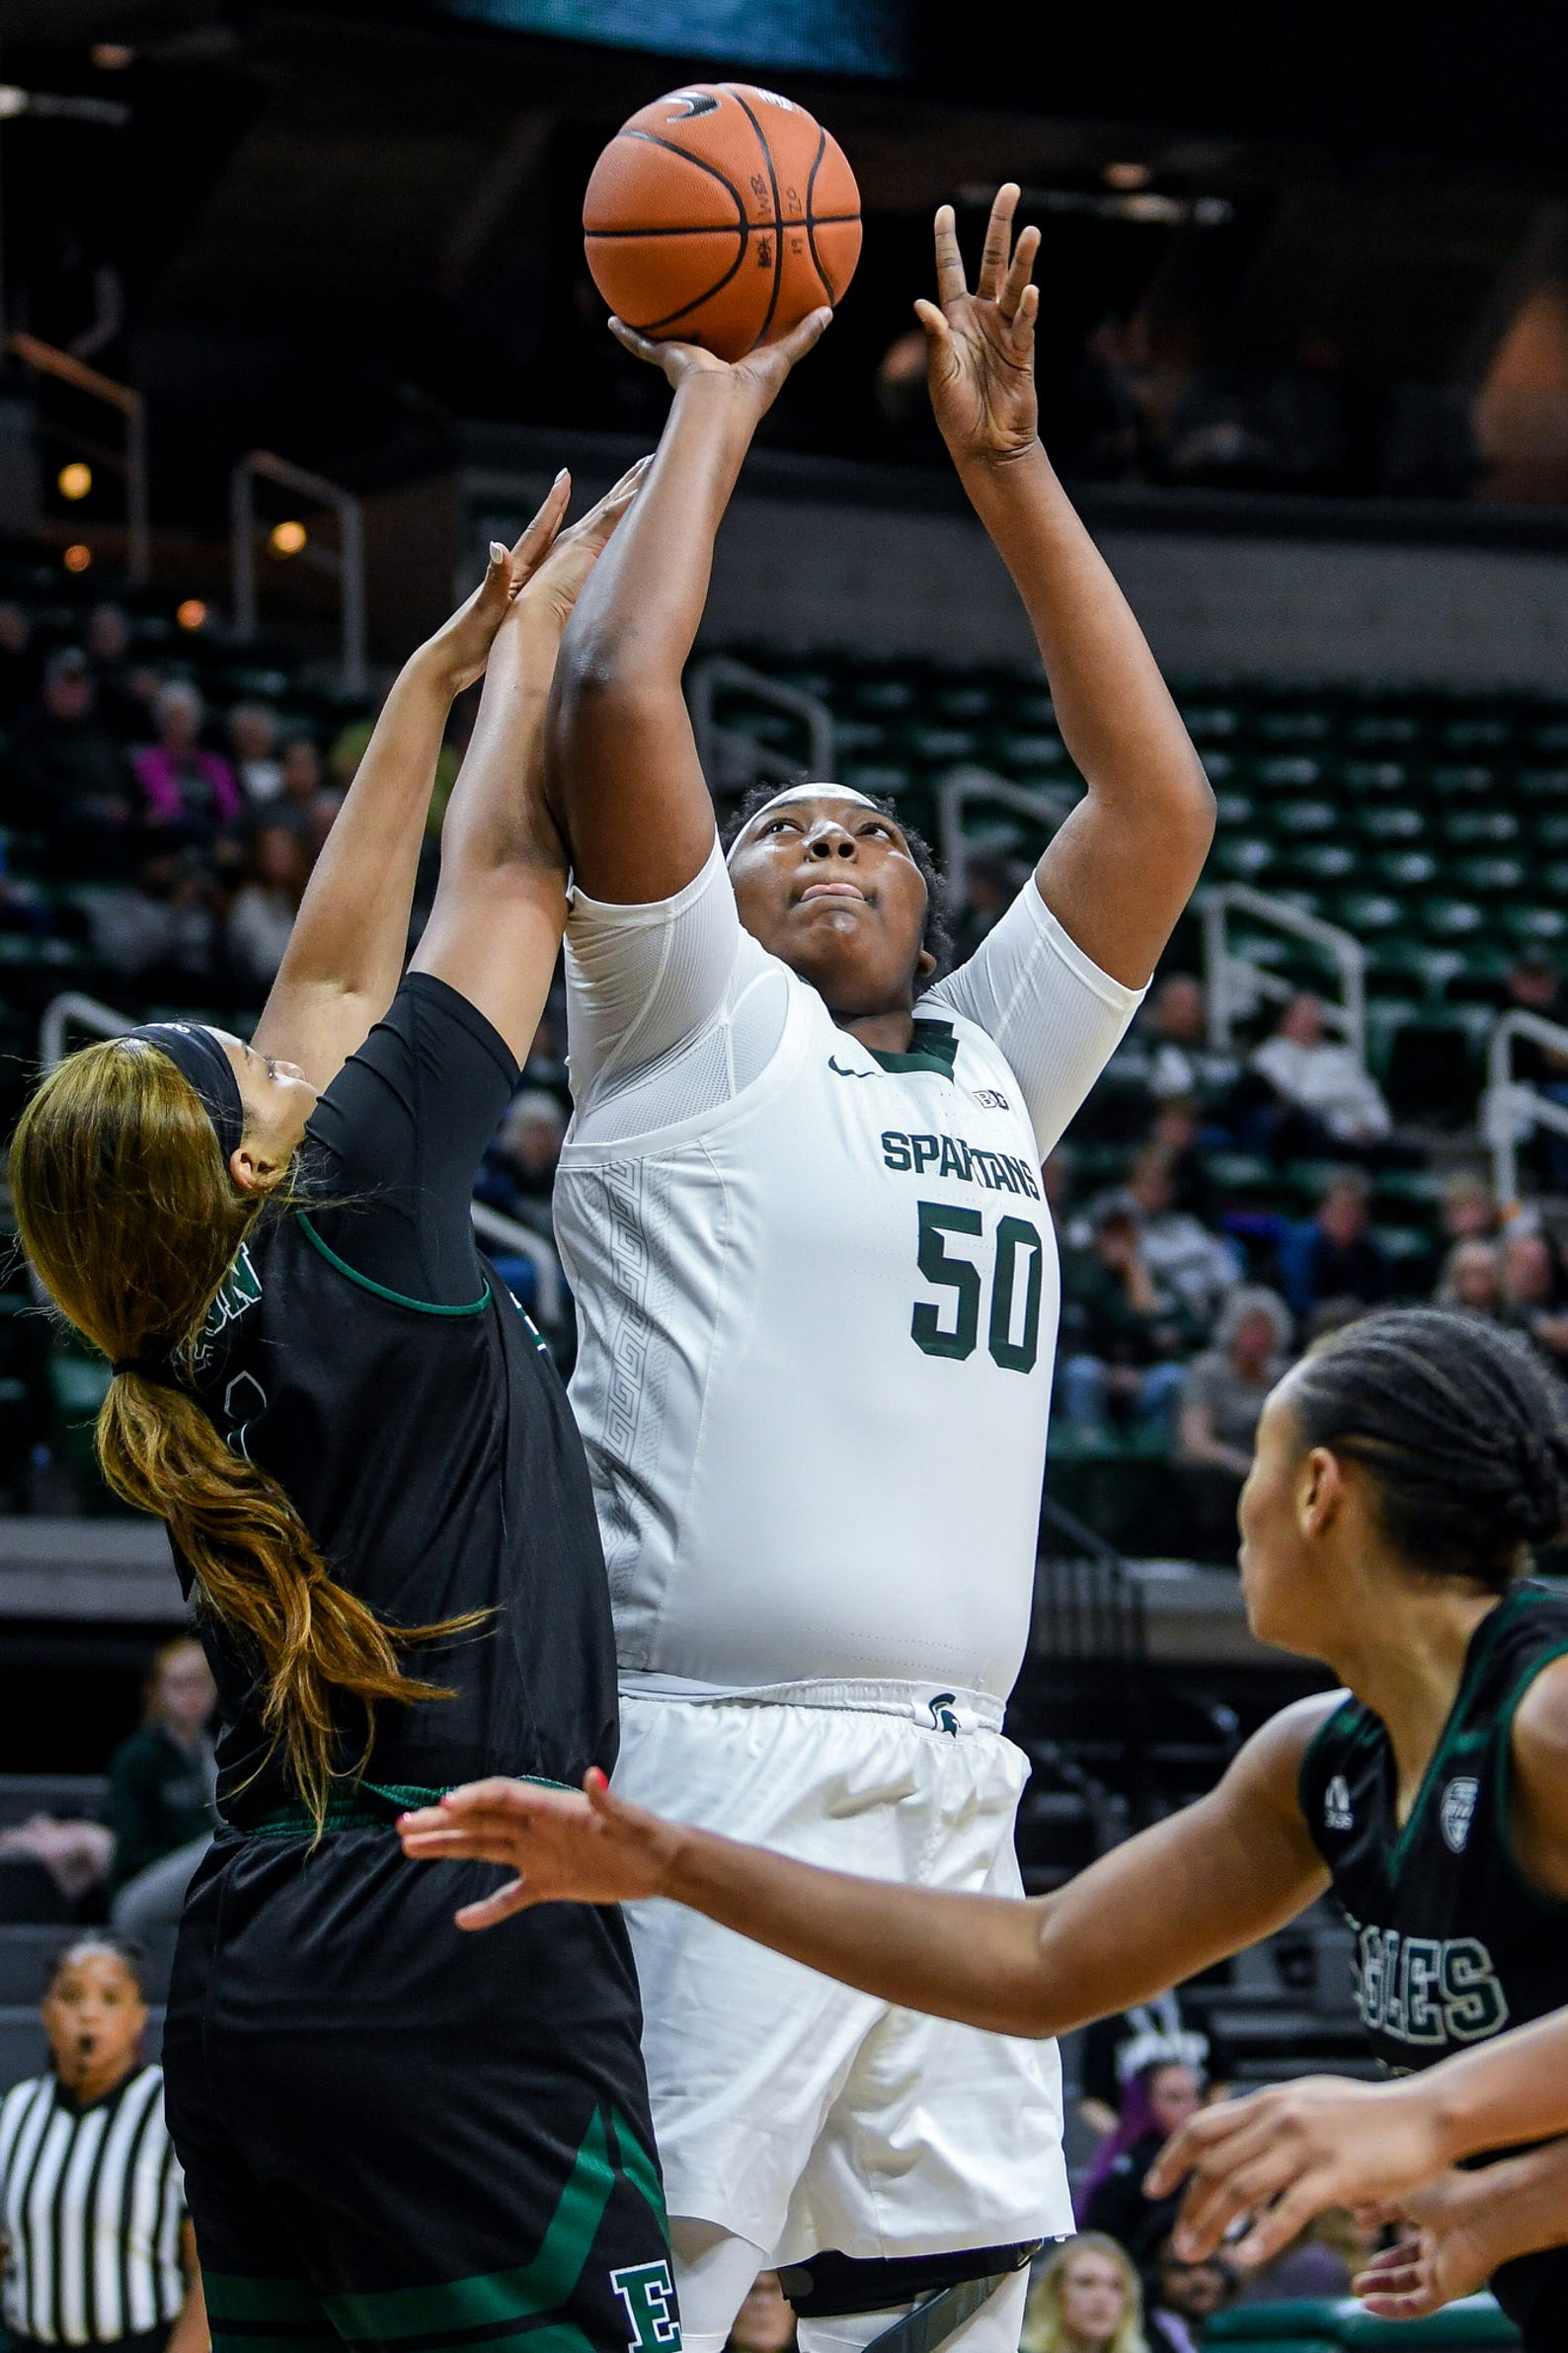 Michigan State's Cydni Dodd, right, shoots as Eastern Michigan's Kiara Johnson defends during the  fourth quarter on Tuesday, Nov. 5, 2019, at the Breslin Center in East Lansing.